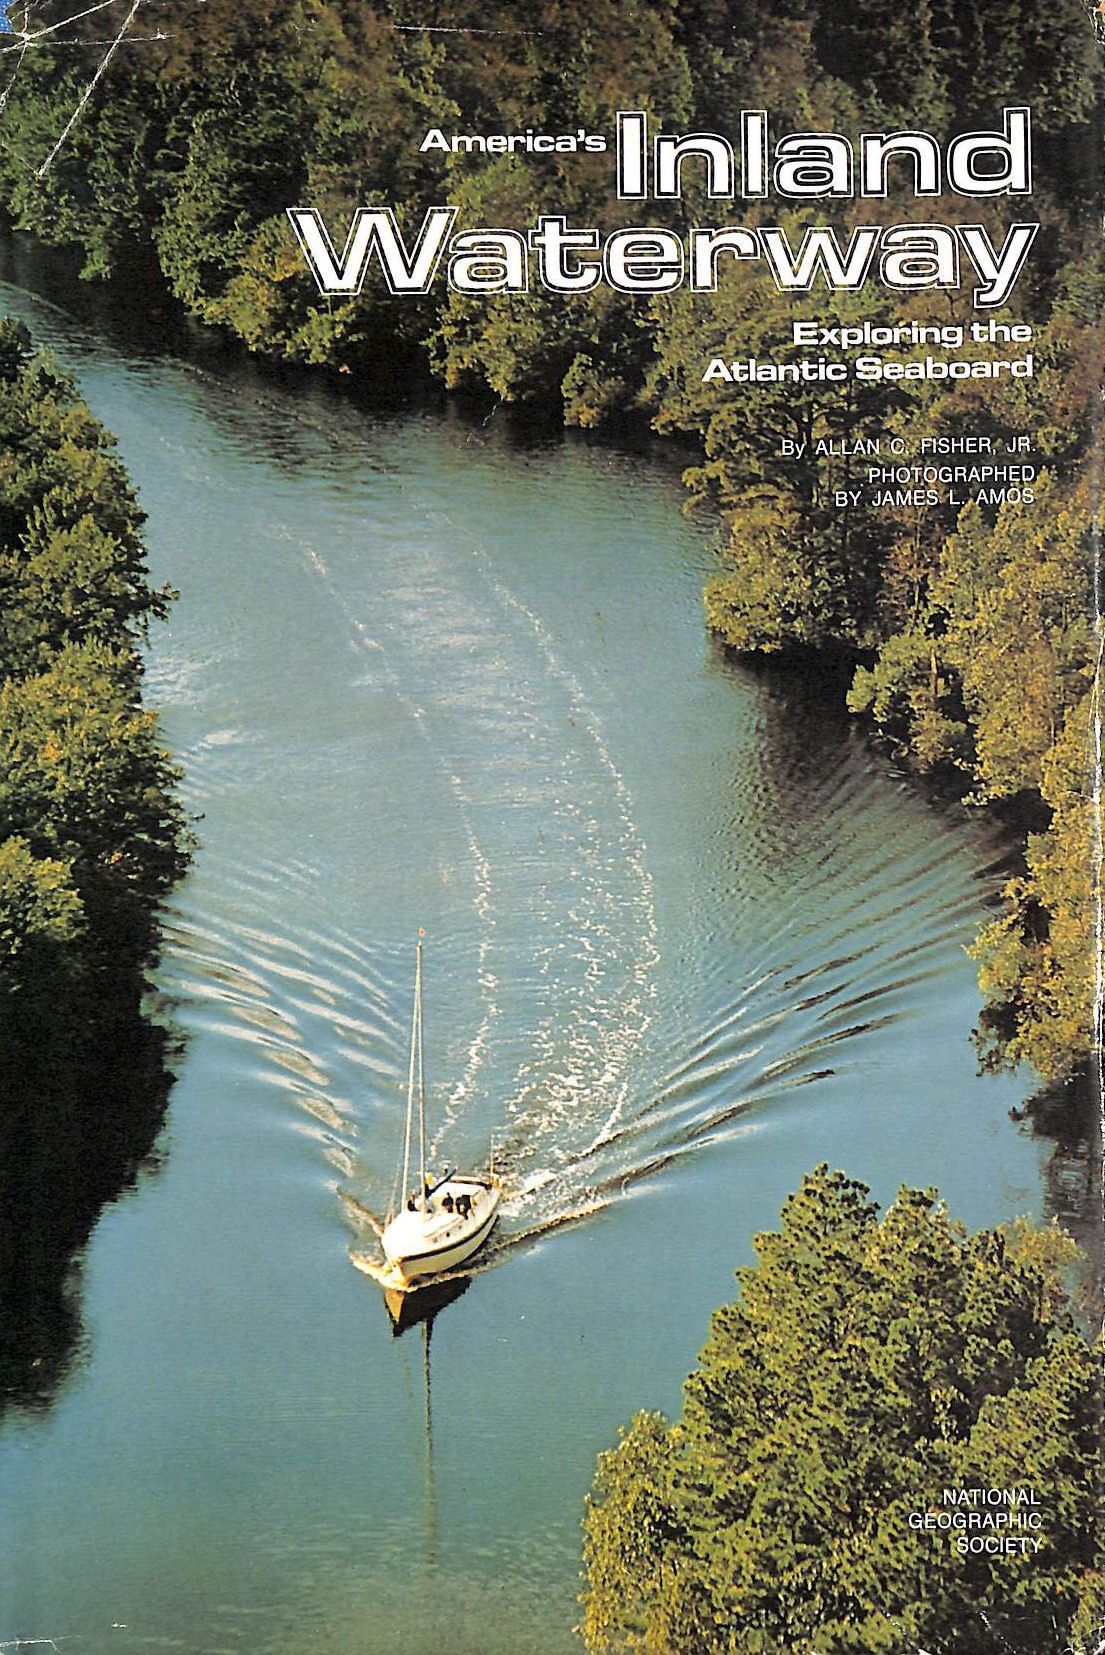 Image for AMERICA's INLAND WATERWAY: EXPLORING THE ATLANTIC SEABOARD.